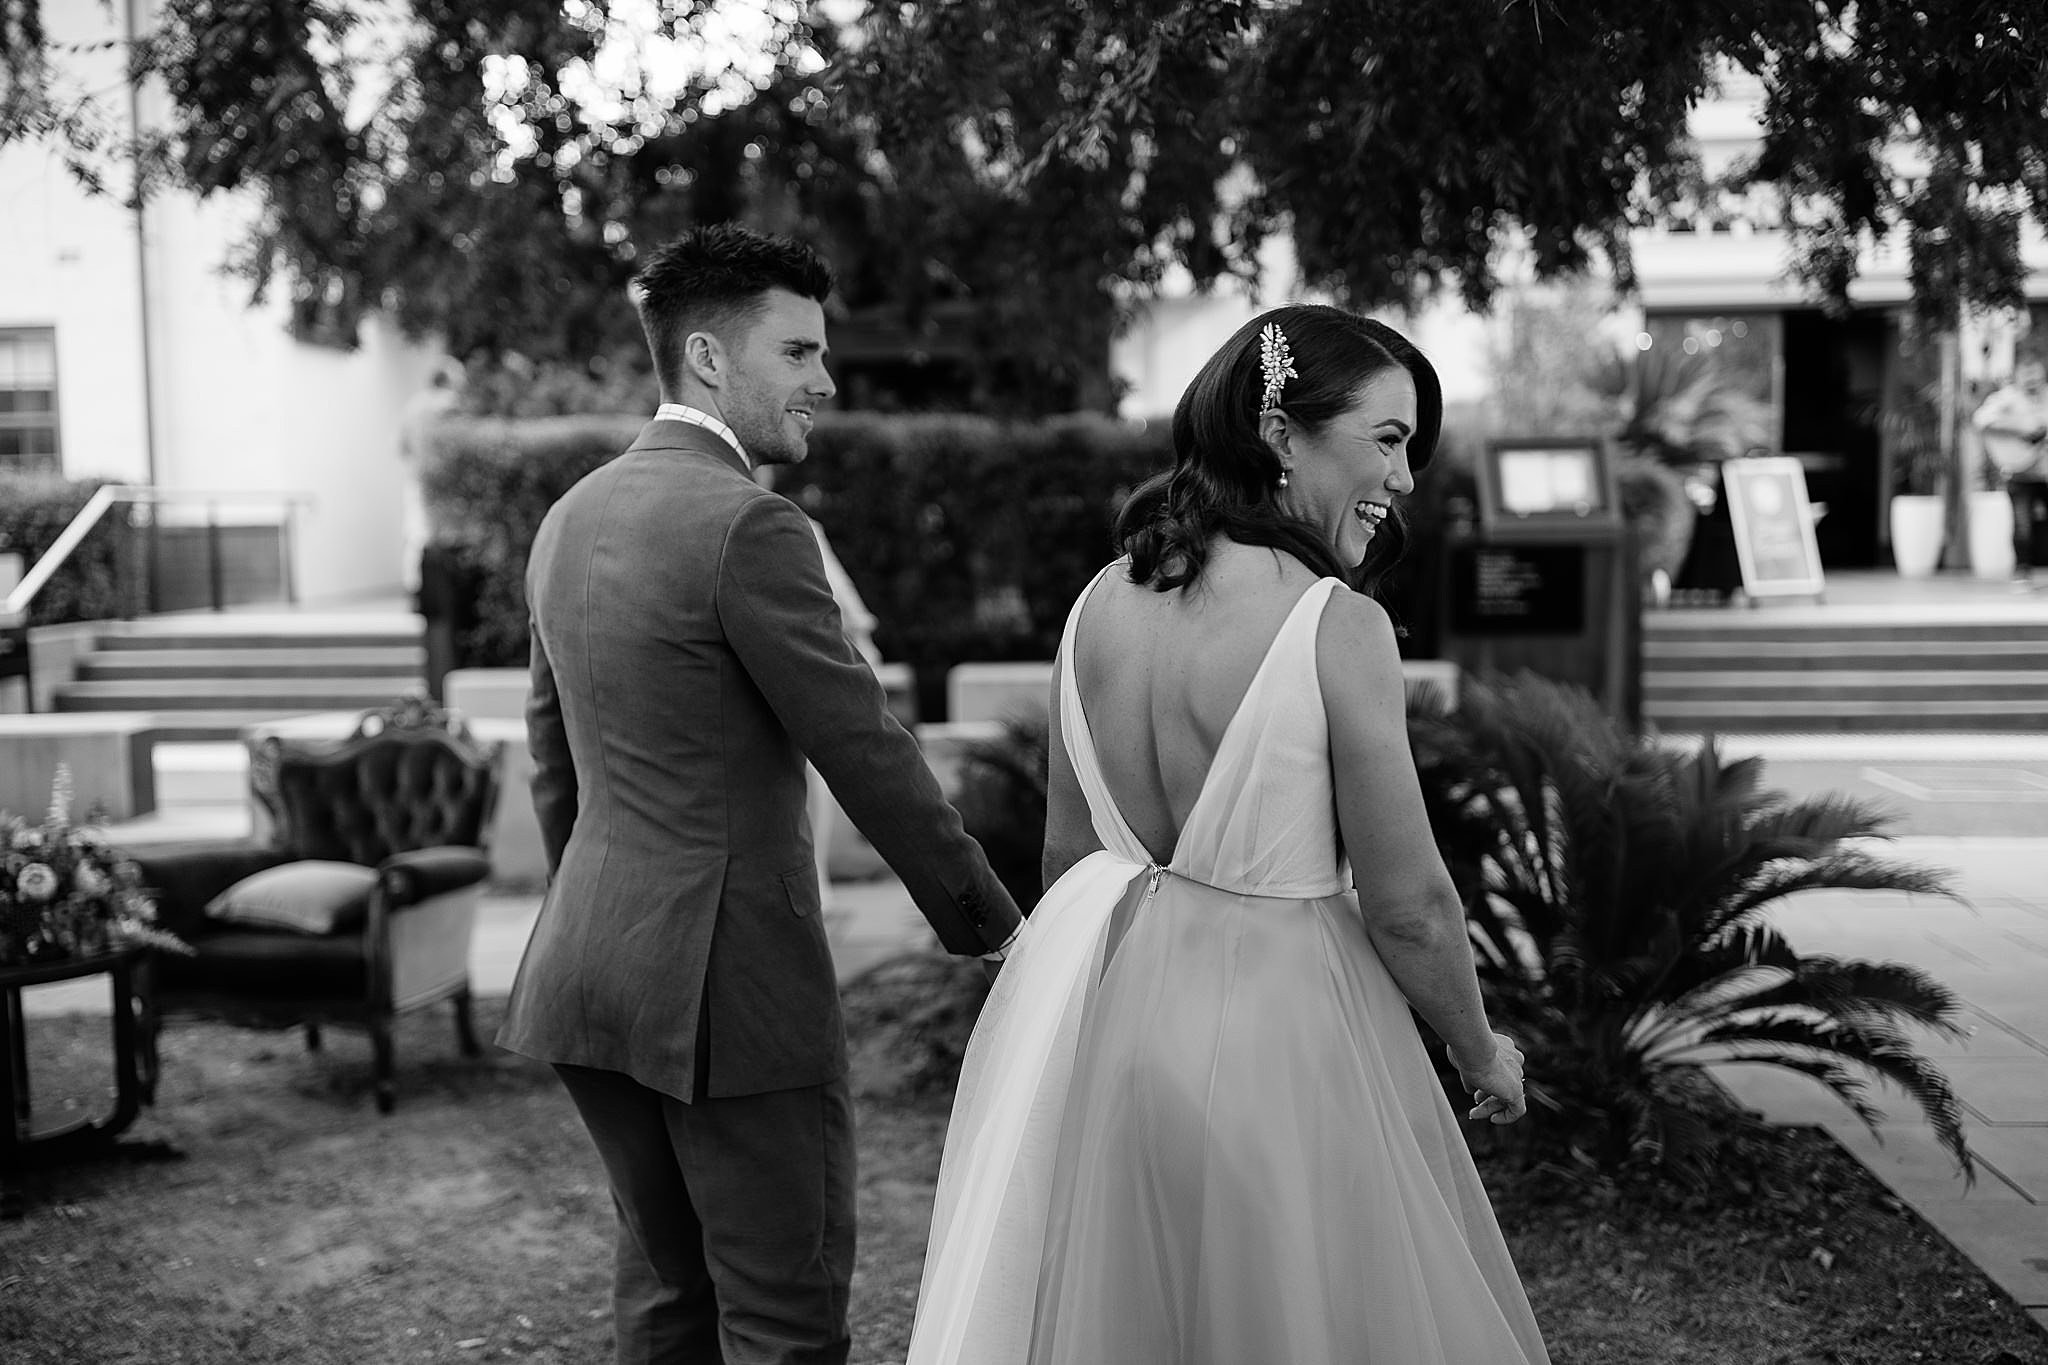 Canberra Photography,Keepsakephoto by the Keeffes,Nishi gallery wedding,Parlour,Parlour Wine room wedding,Palace cinema,Canberra Urban Wedding,Backyard Wedding,Inspiration,Summer wedding,Canberra Wedding Photographer,Canberra Wedding Photography,canberra wedding,